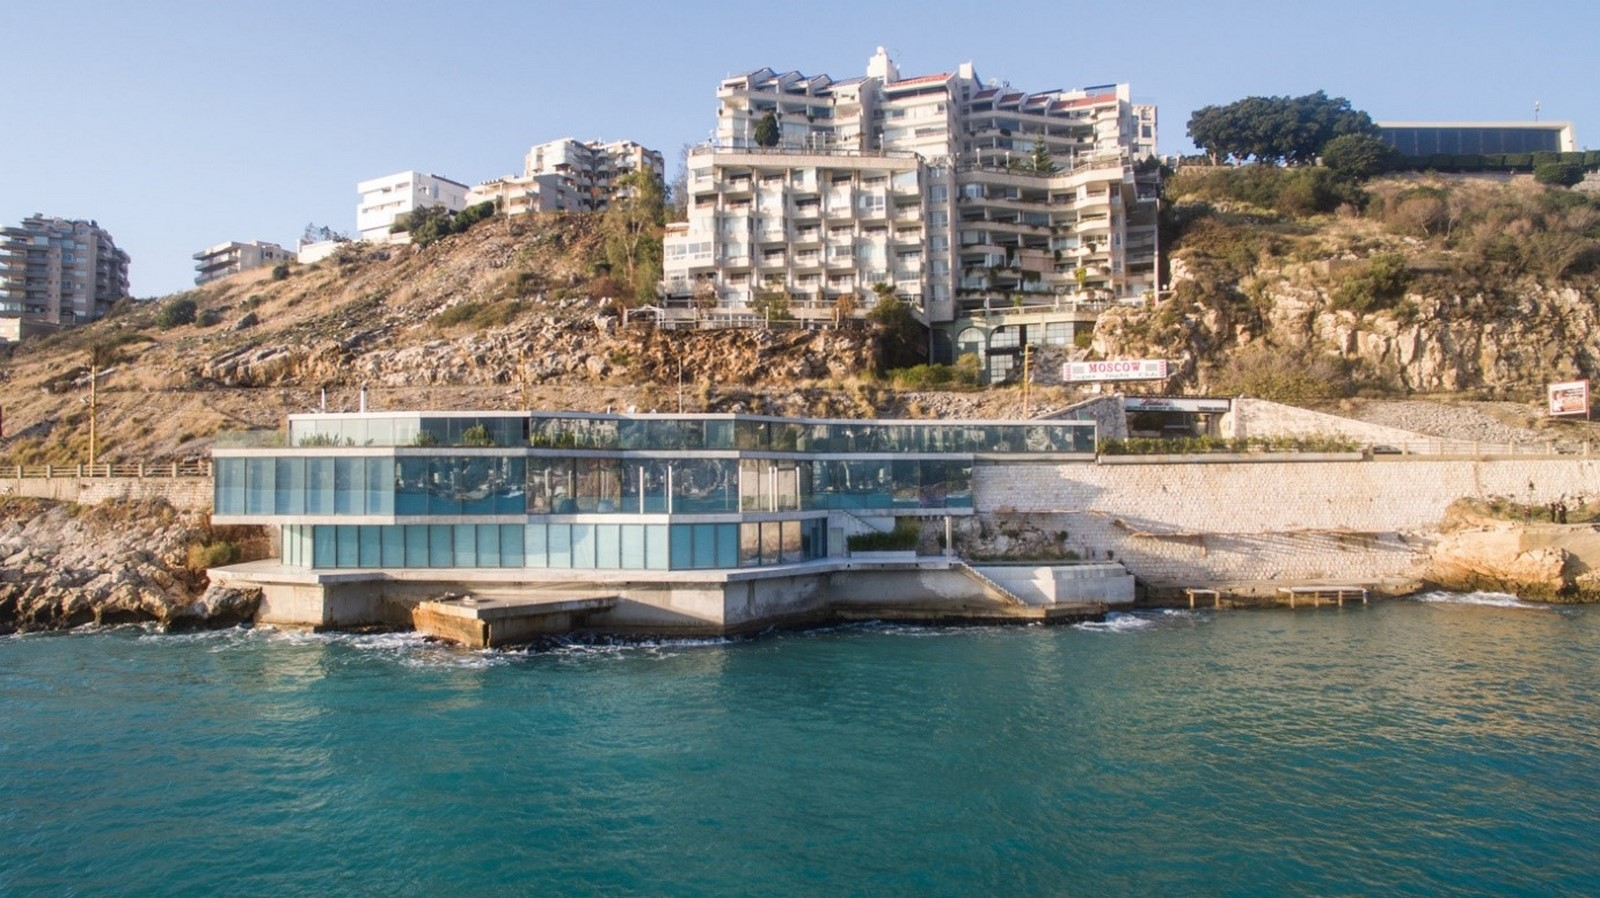 Sculpted House Hovering Over the Mediterranean by SOMA:Floating Houses - Sheet1